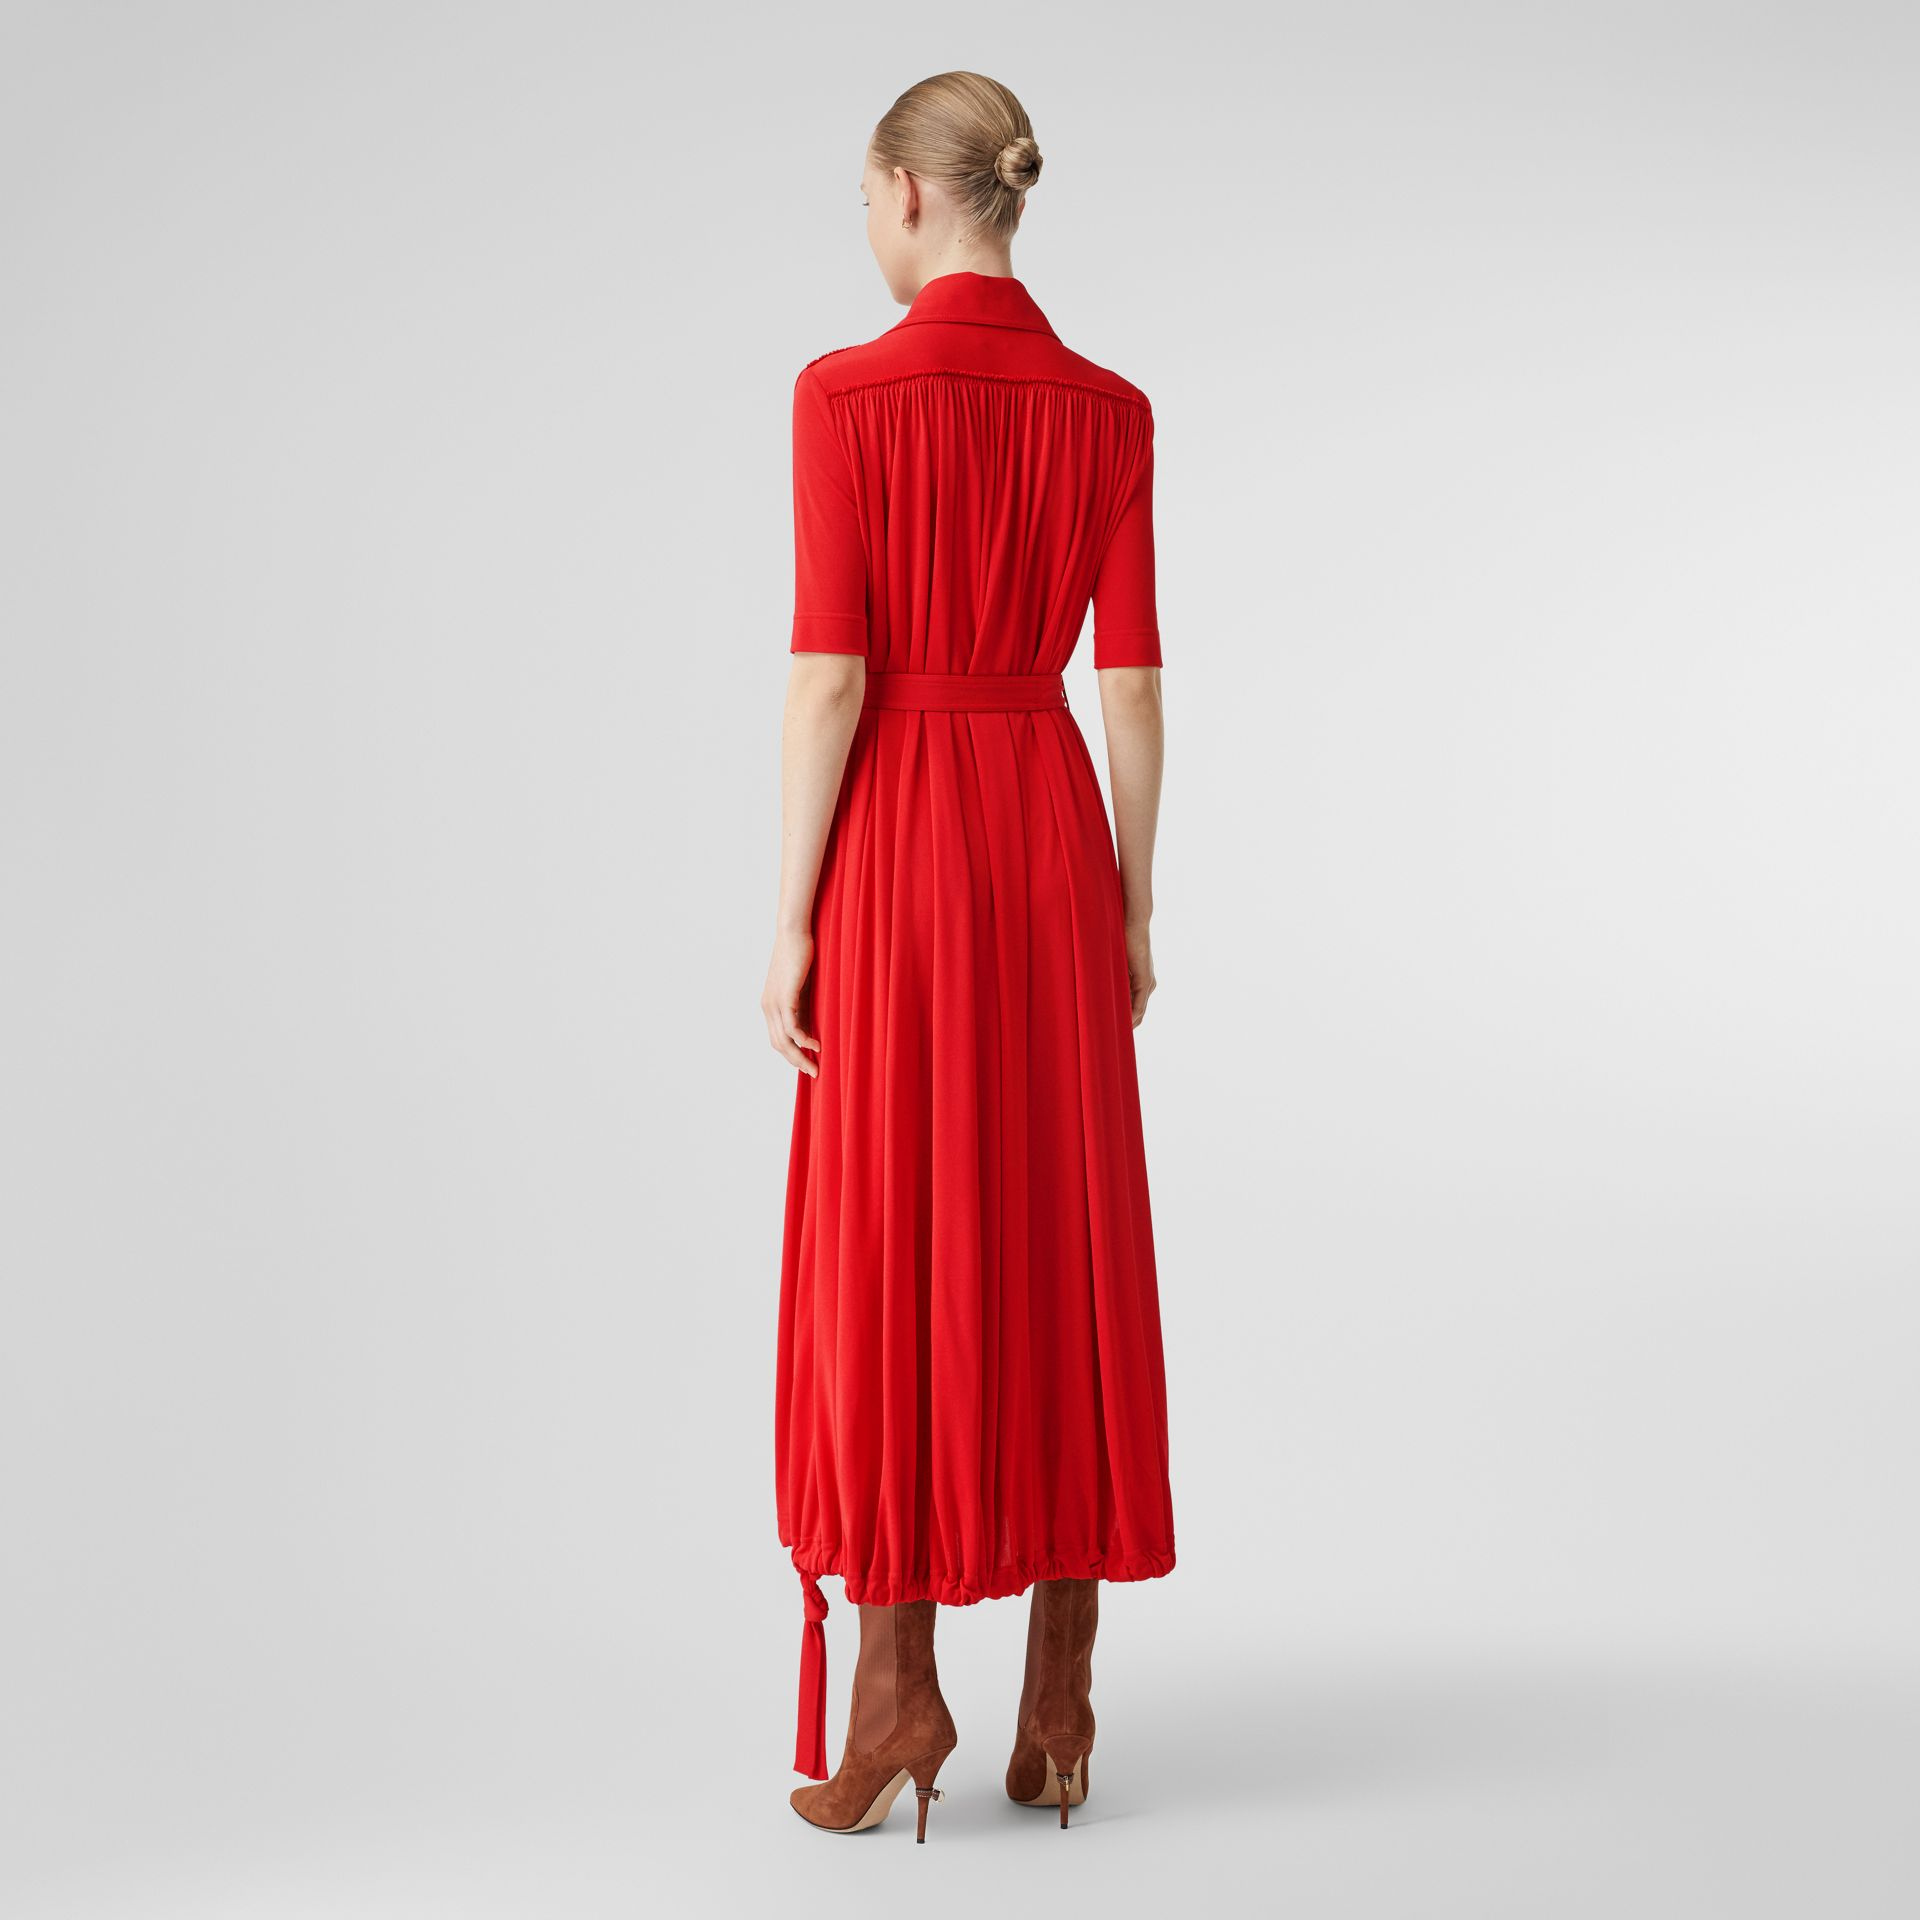 Short-sleeve Gathered Jersey Dress in Bright Red - Women | Burberry - gallery image 2